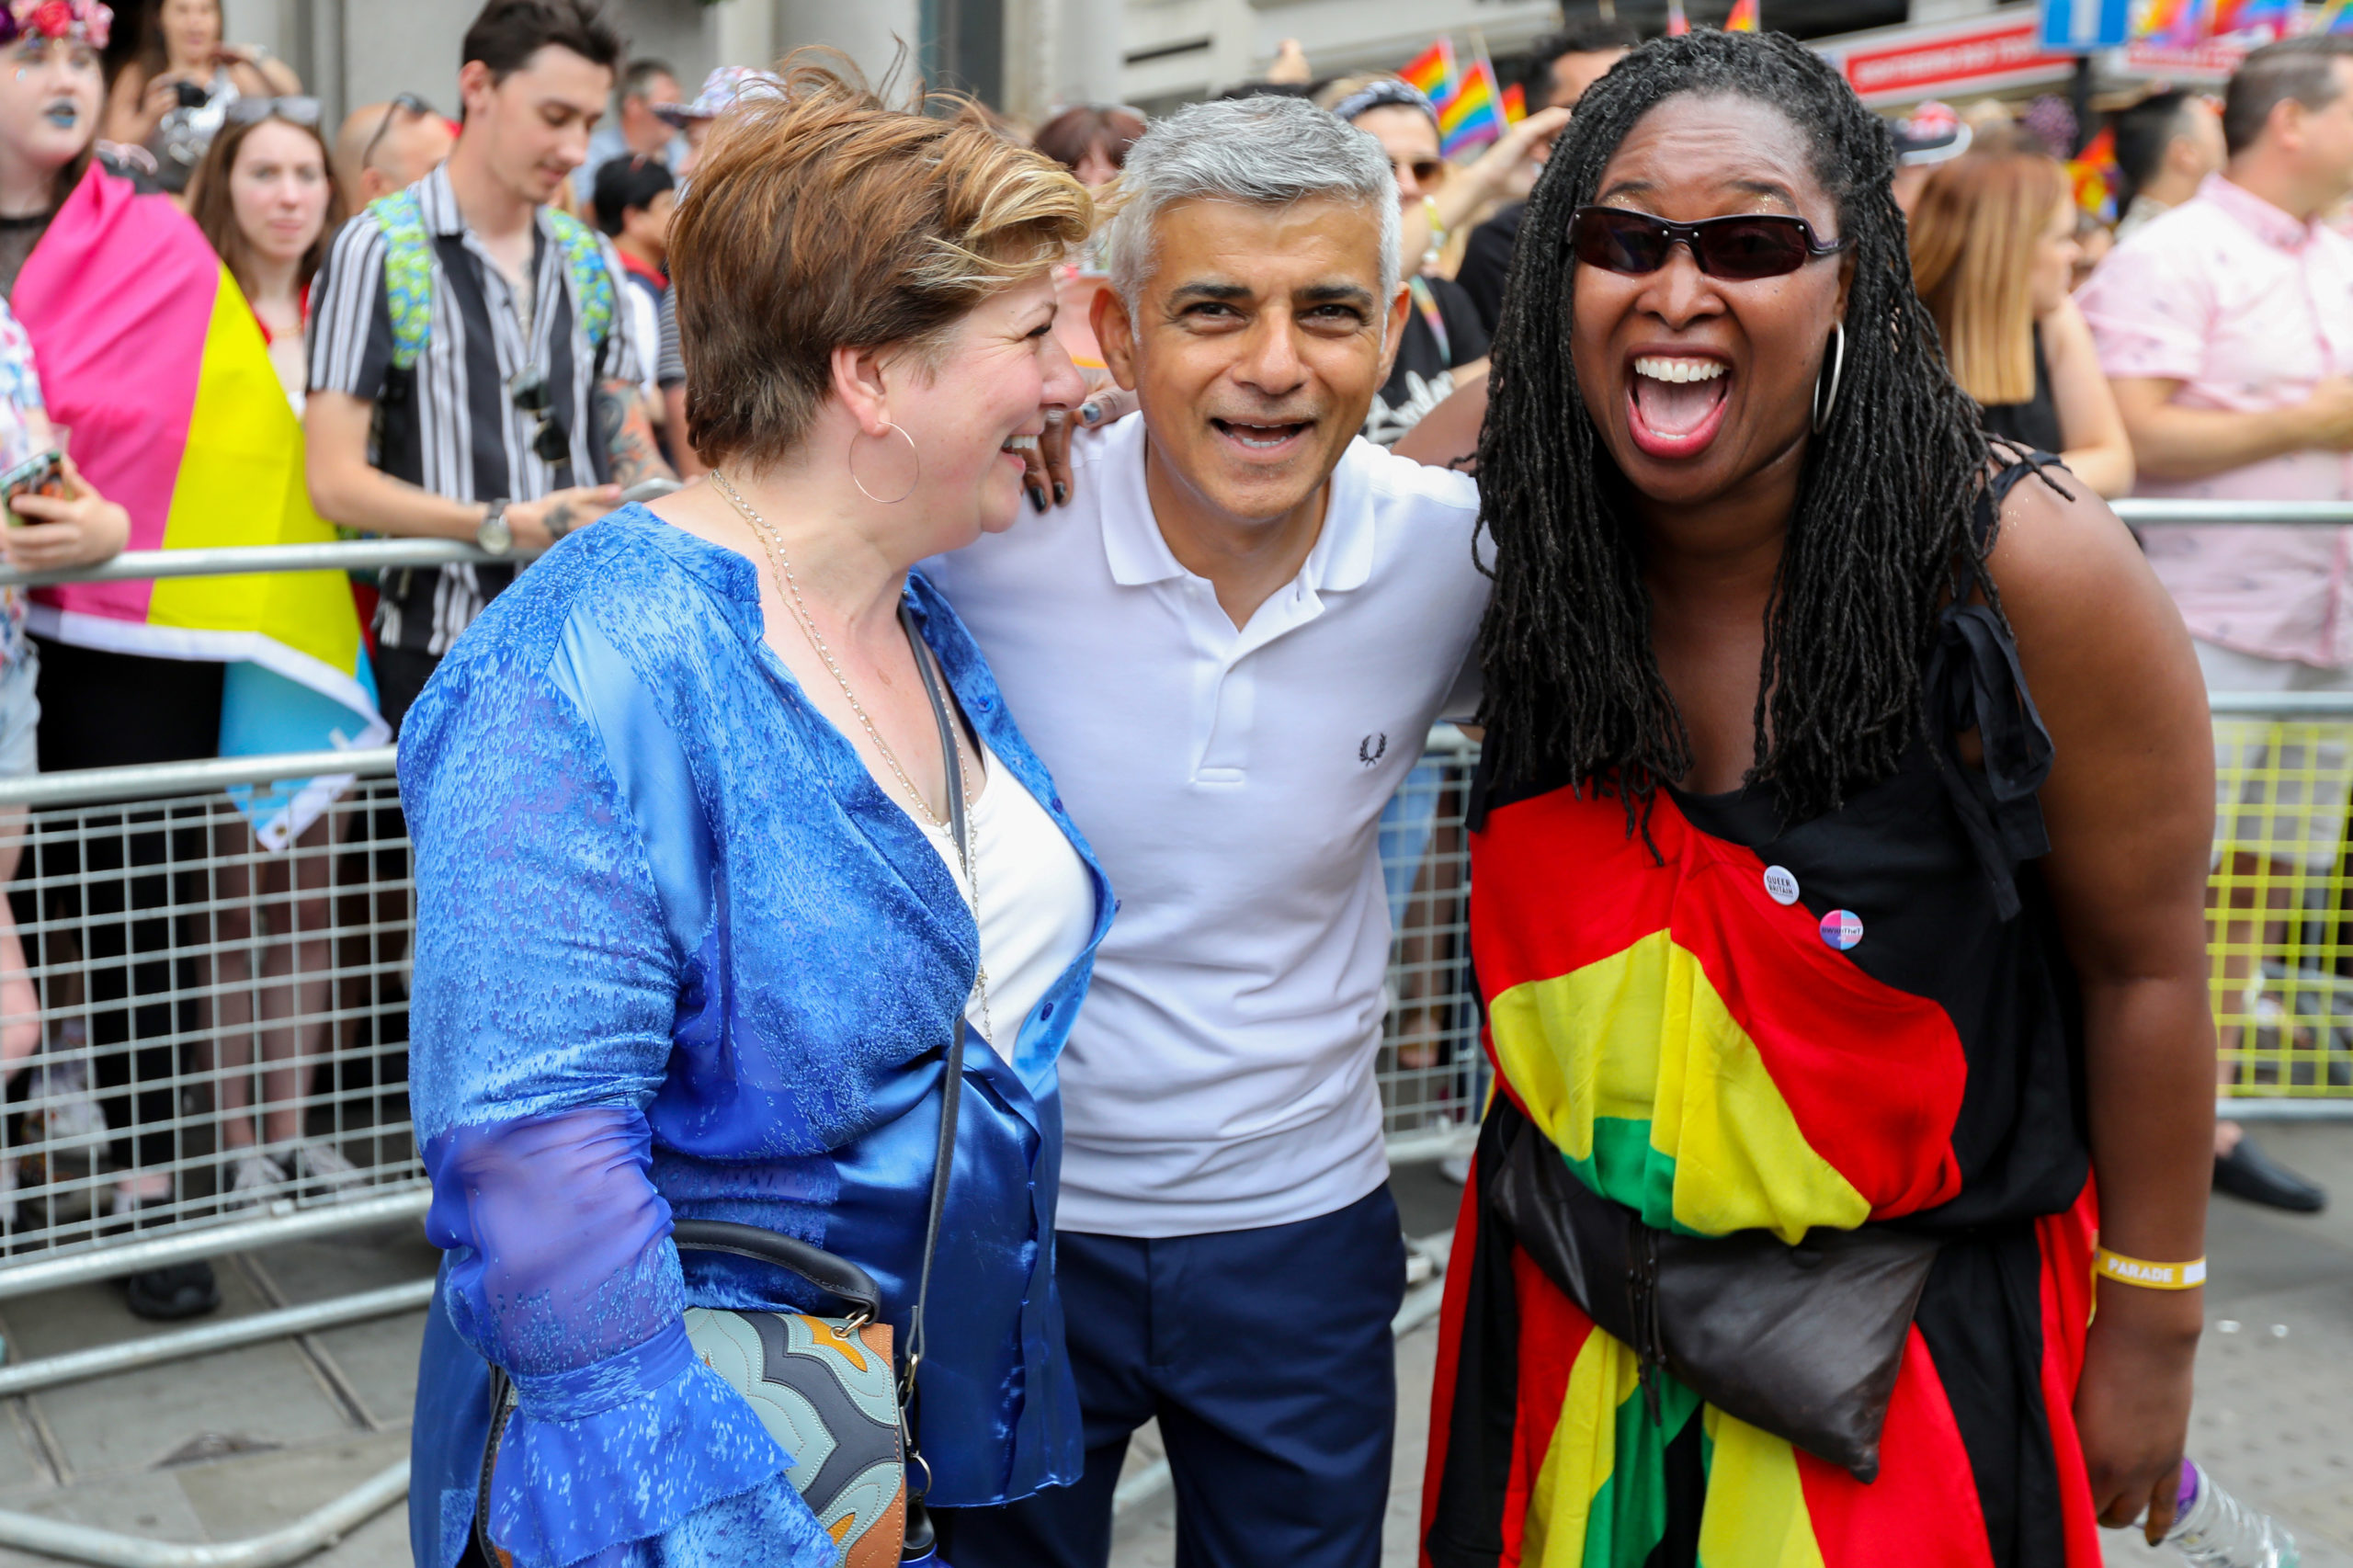 Emily Thornberry (L) and London Mayor Sadiq Khan (C) and Dawn Butler during Pride in London 2019. (Tristan Fewings/Getty Images for Pride in London)